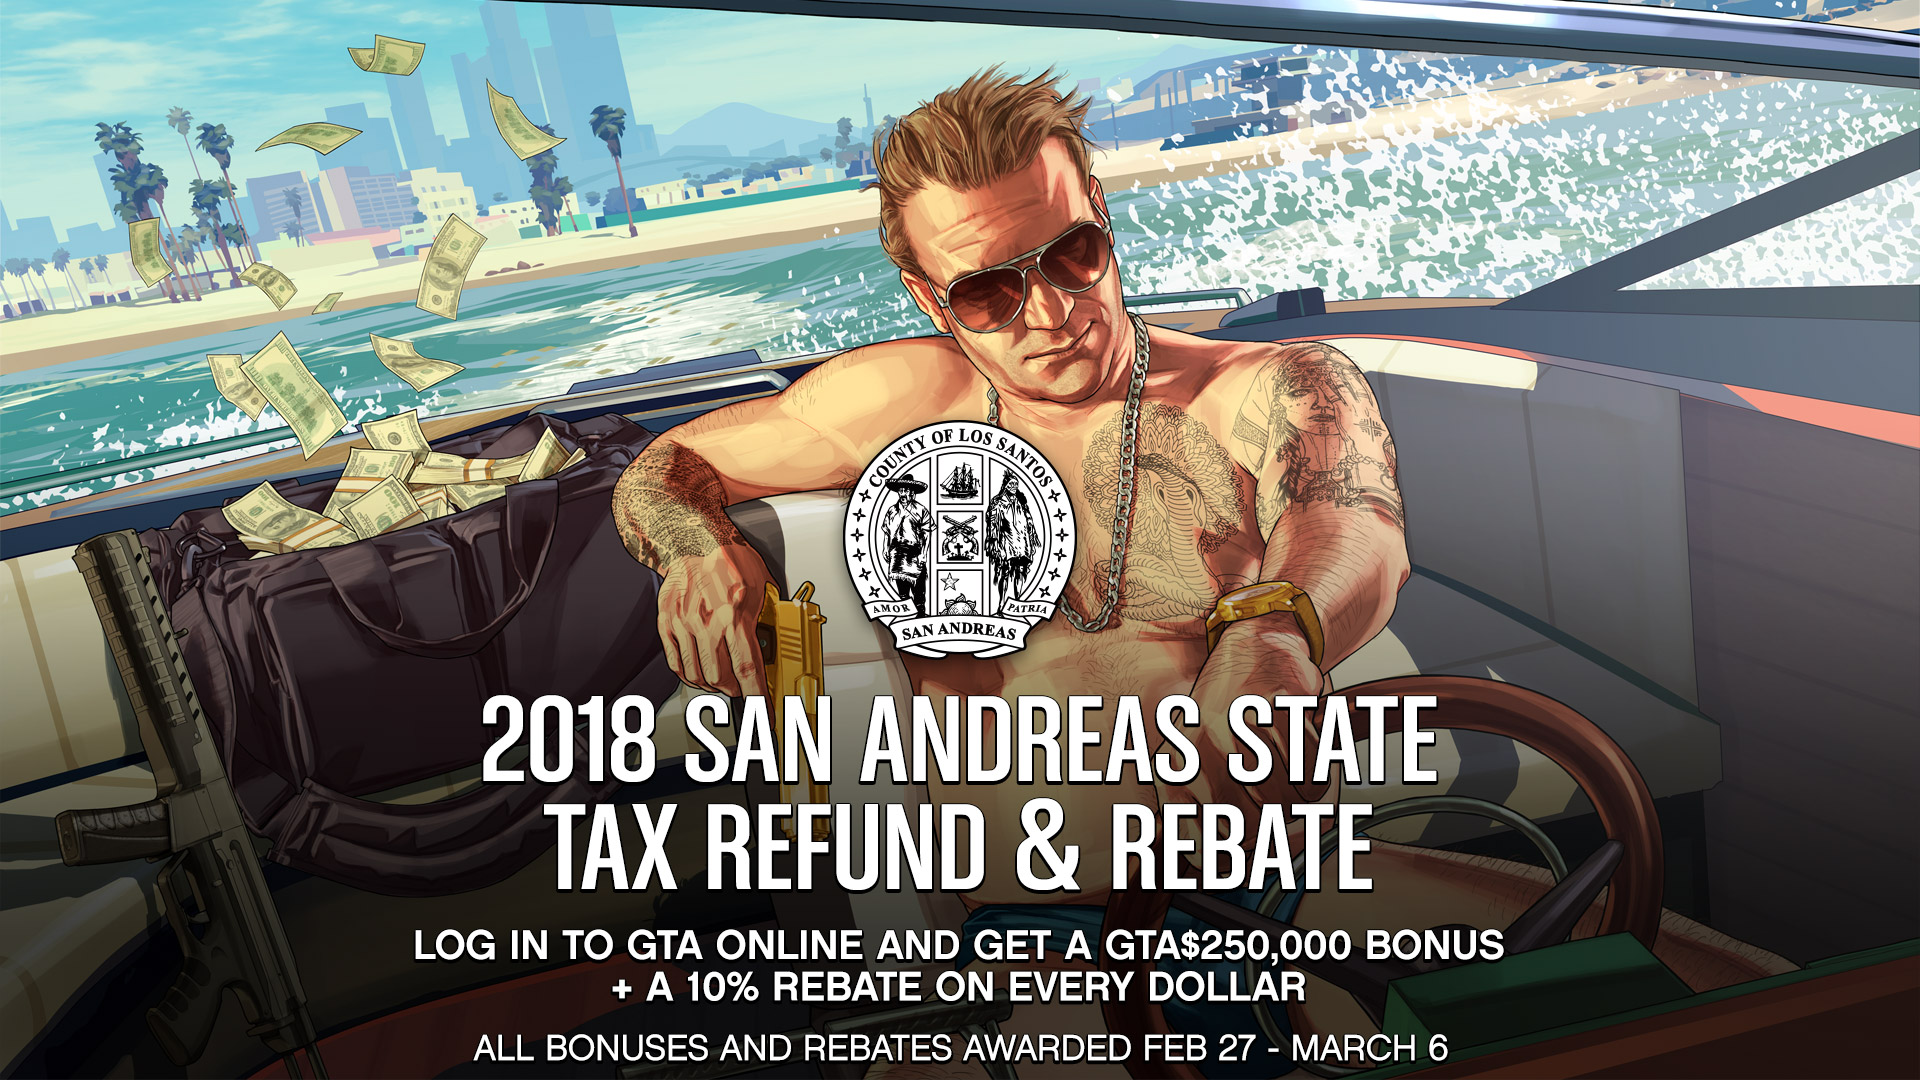 GTA Online ensures you'll have some cash to burn this tax season